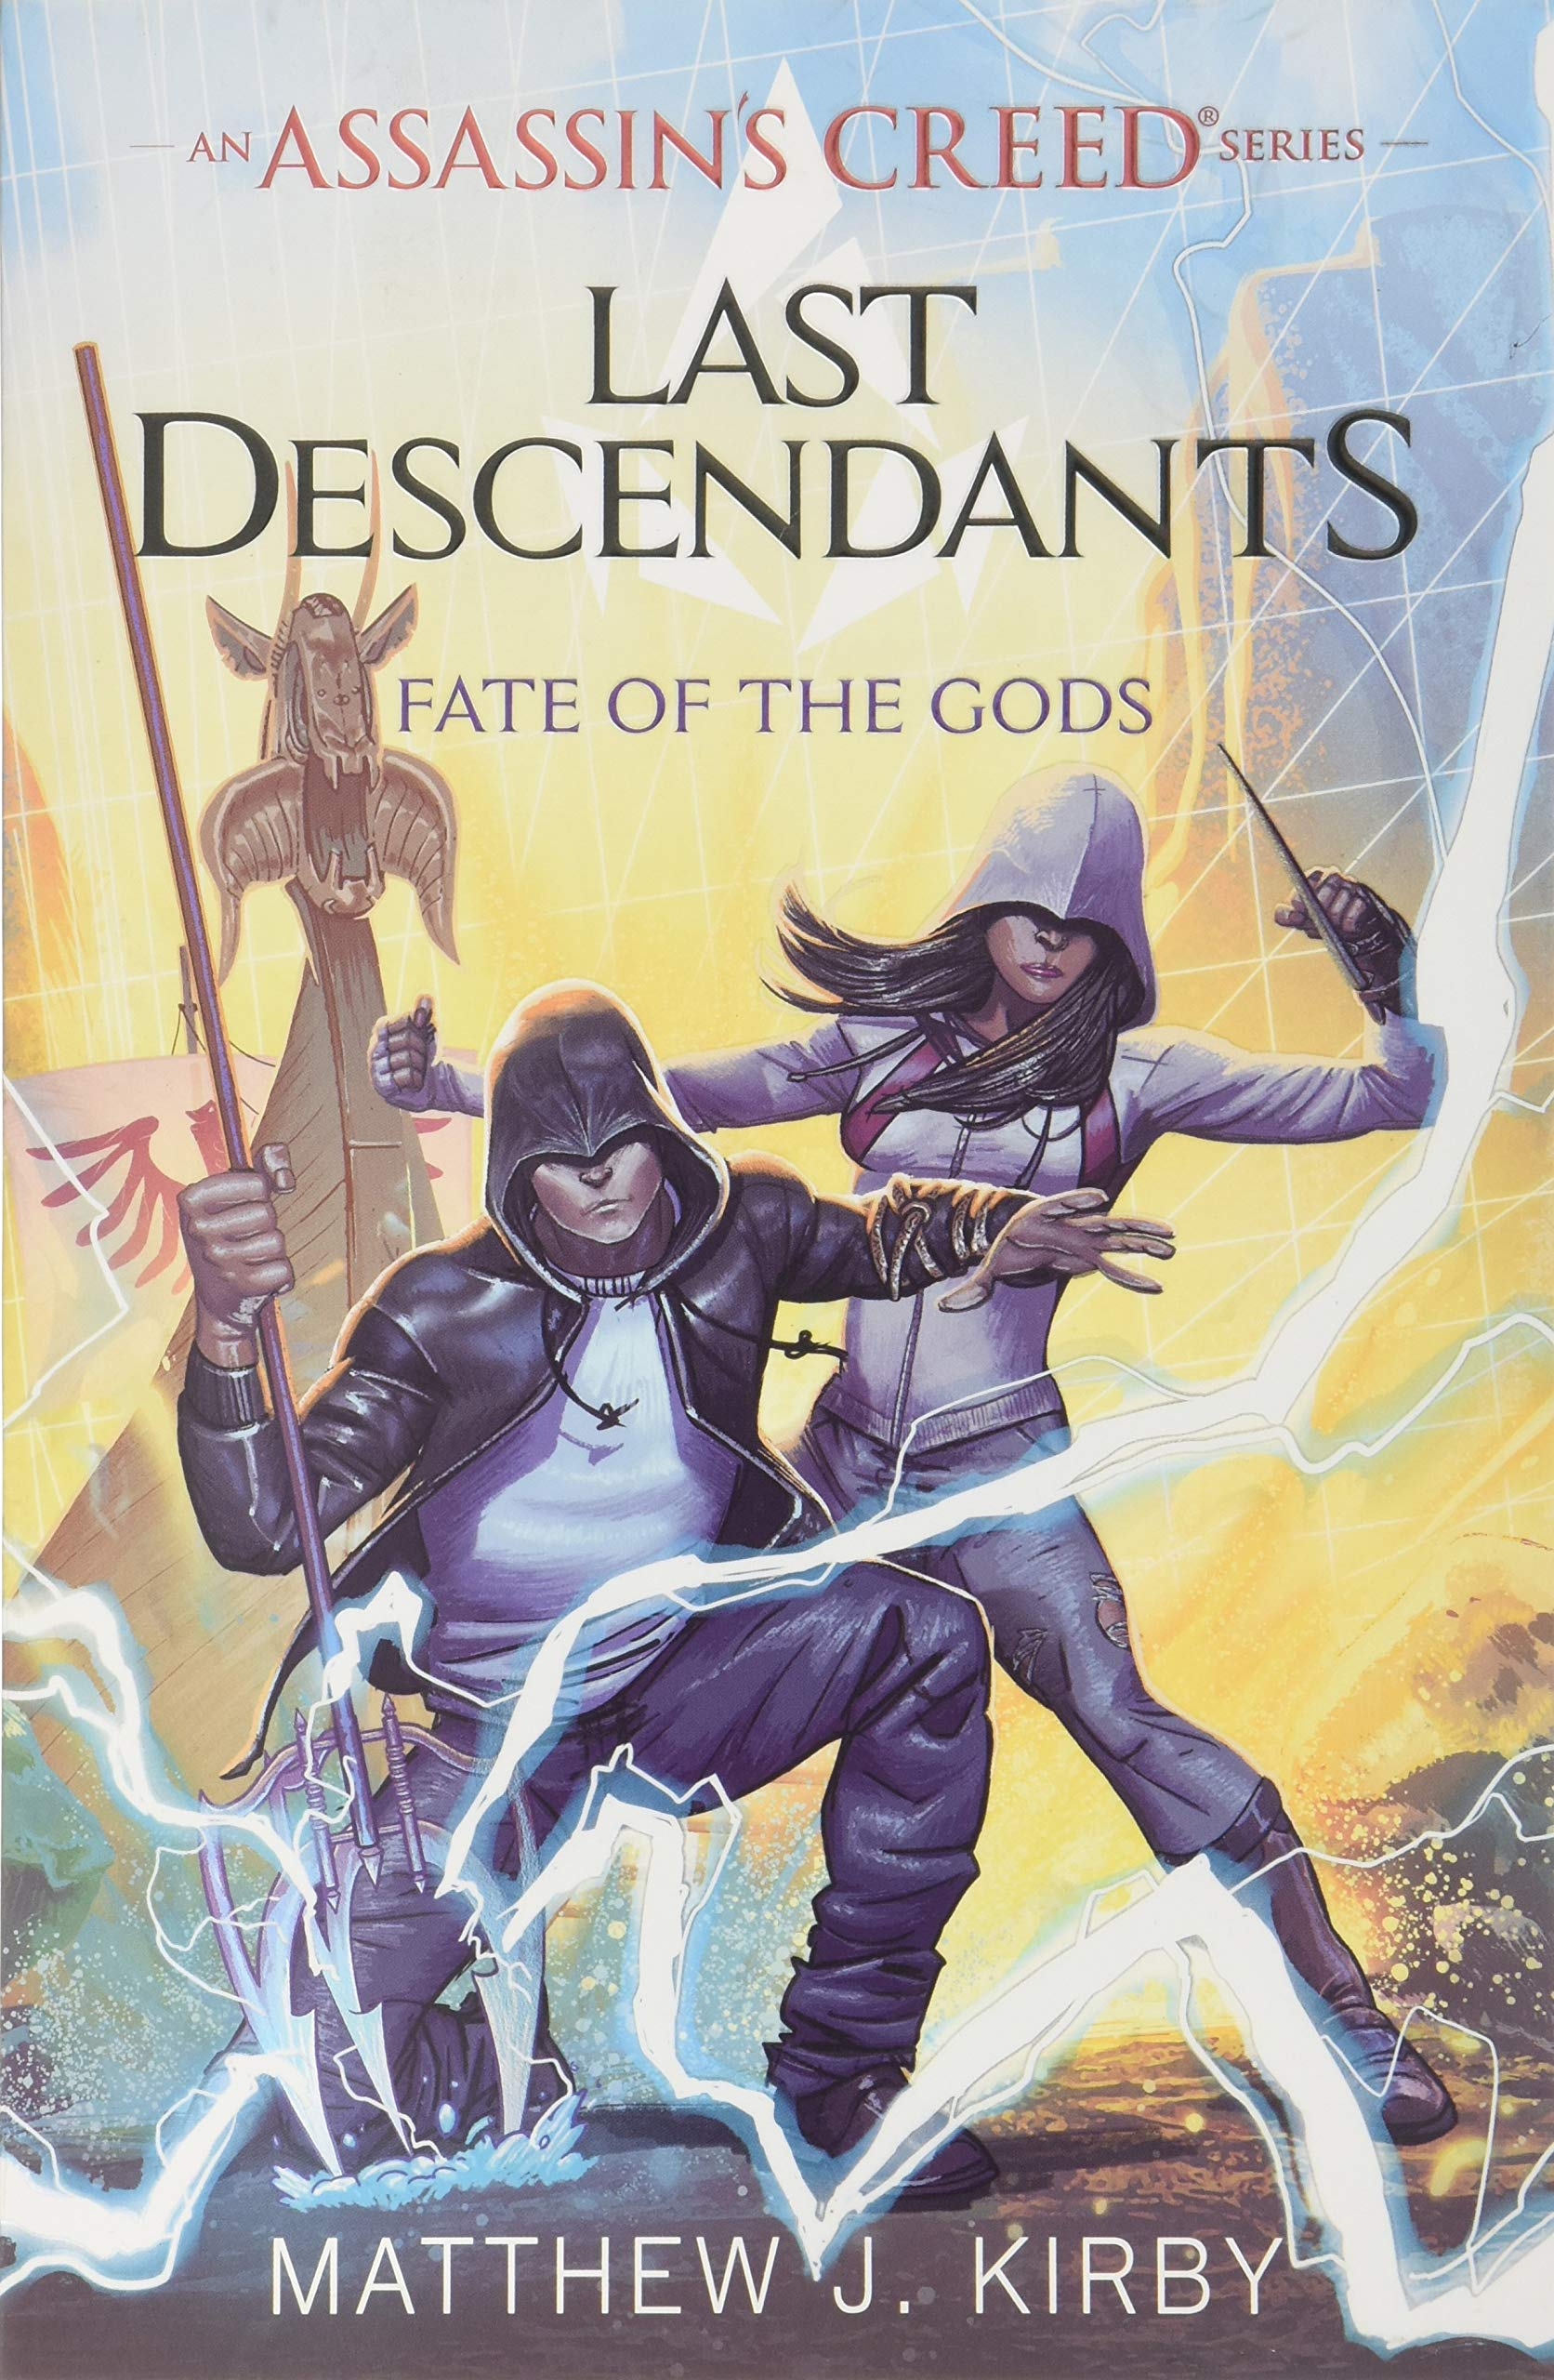 Assassin's Creed: Last Descendants – Fate of the Gods